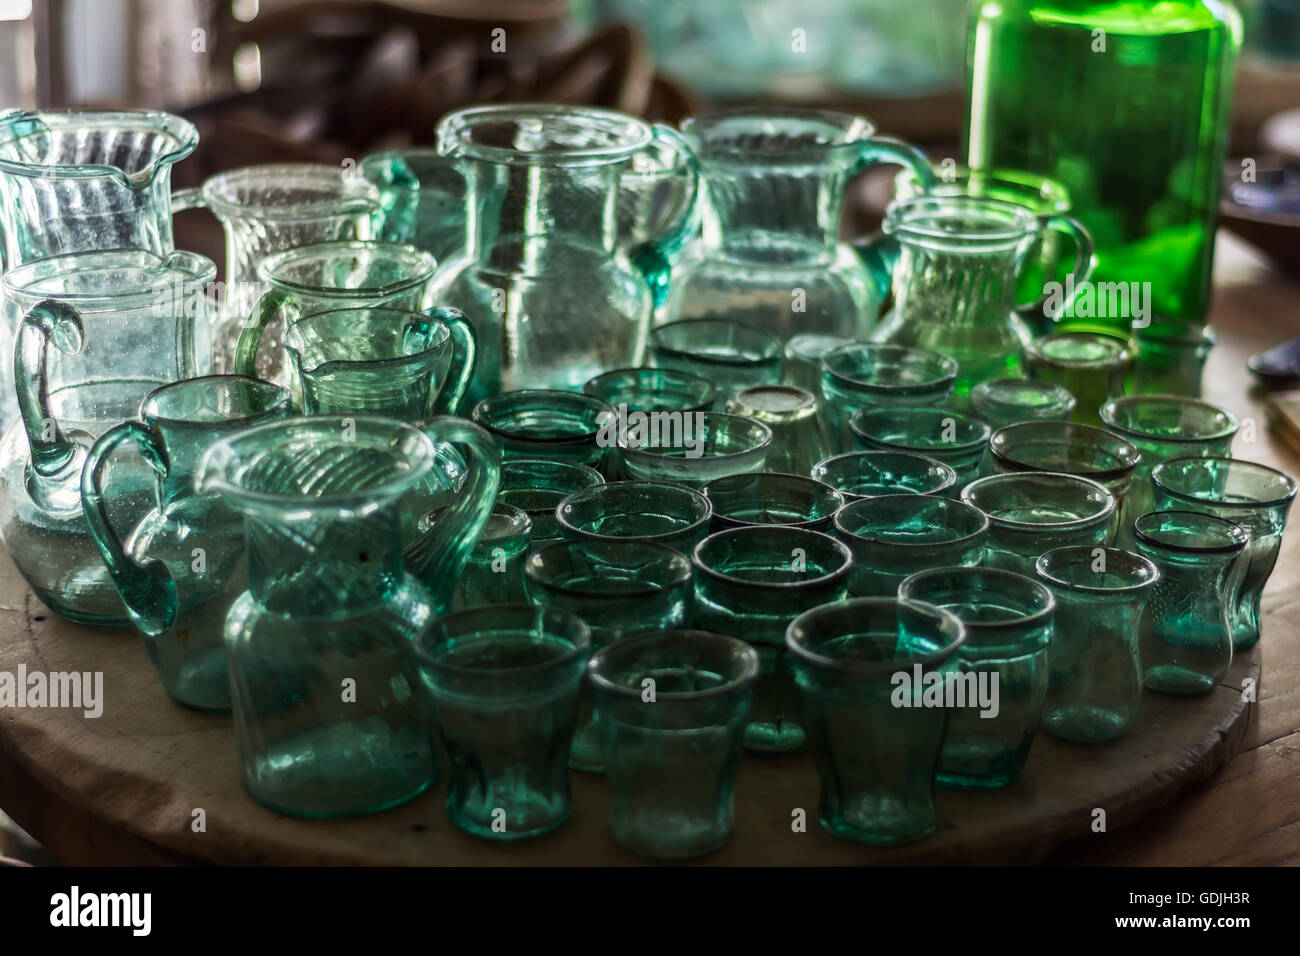 Vintage glassware jars, glasses, bottle - Stock Image